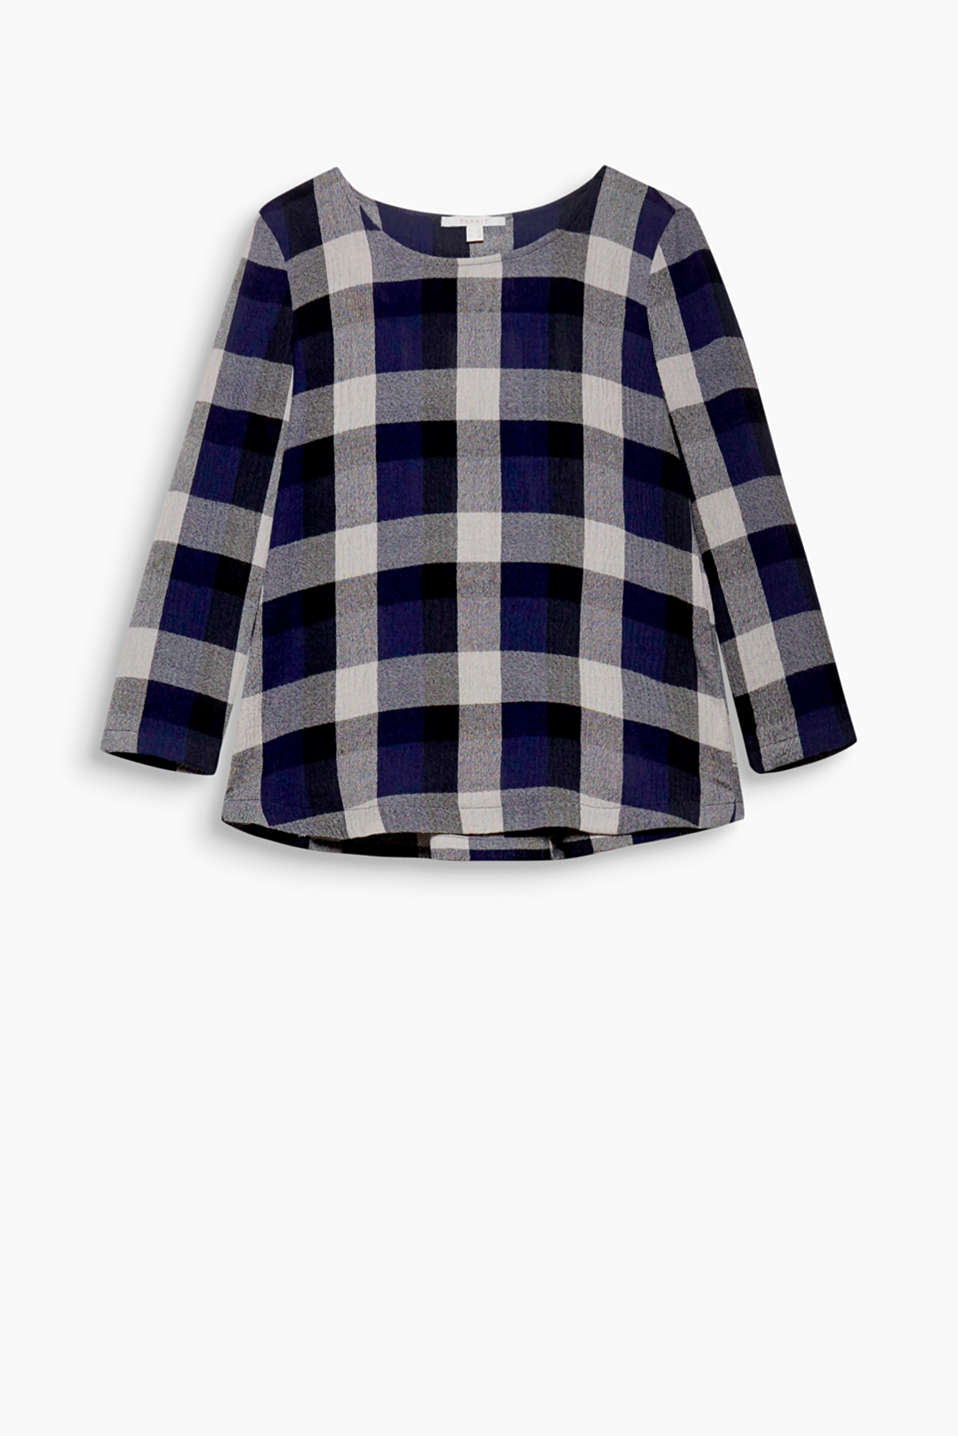 The lightly creased fabric and modern A-line design give this stunningly checked blouse its cool style!